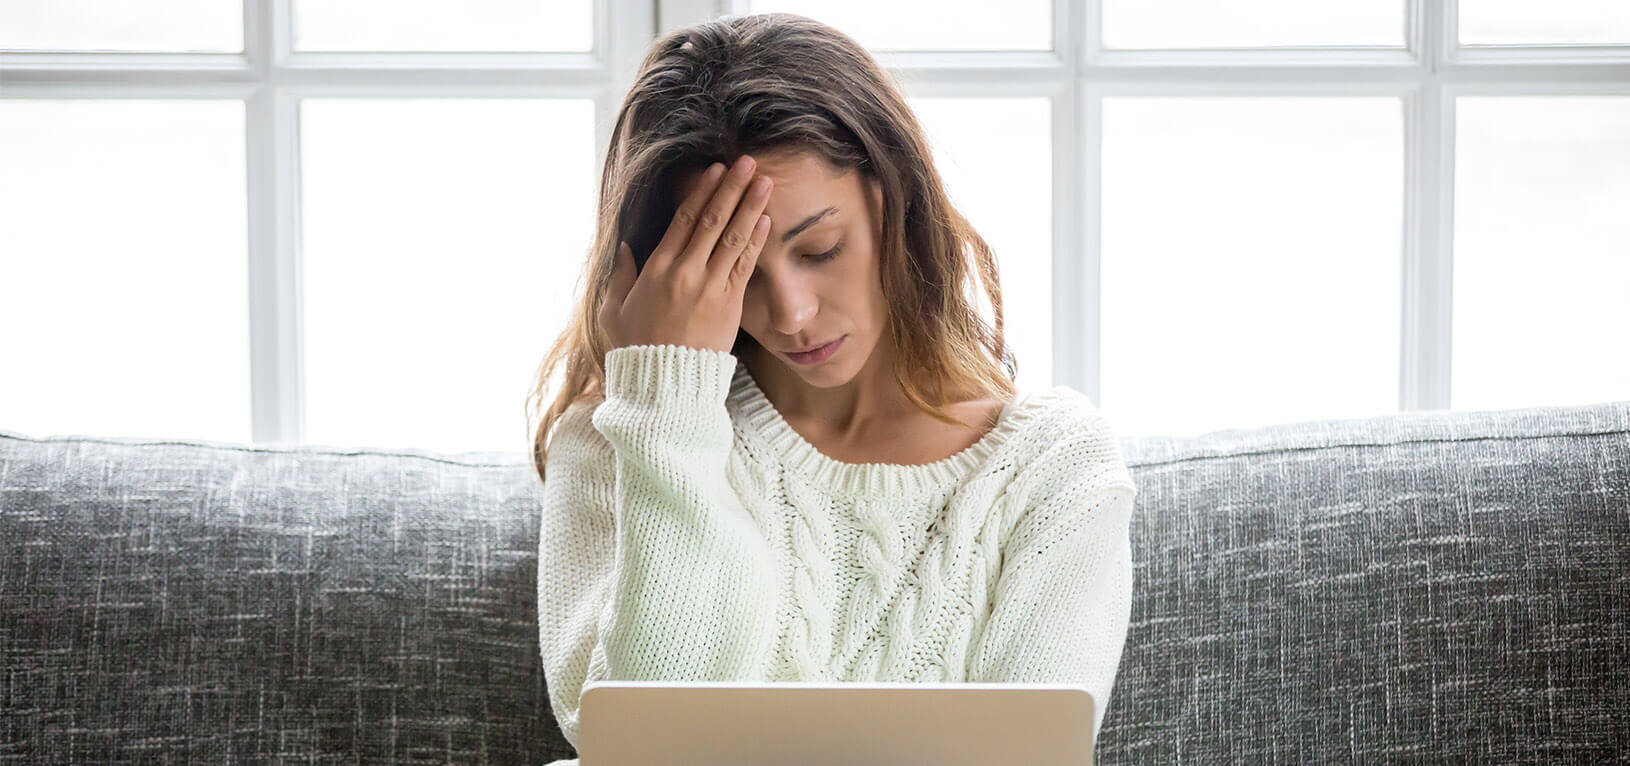 Kernersville Psychologist, Anxiety Treatment and Depression Treatment